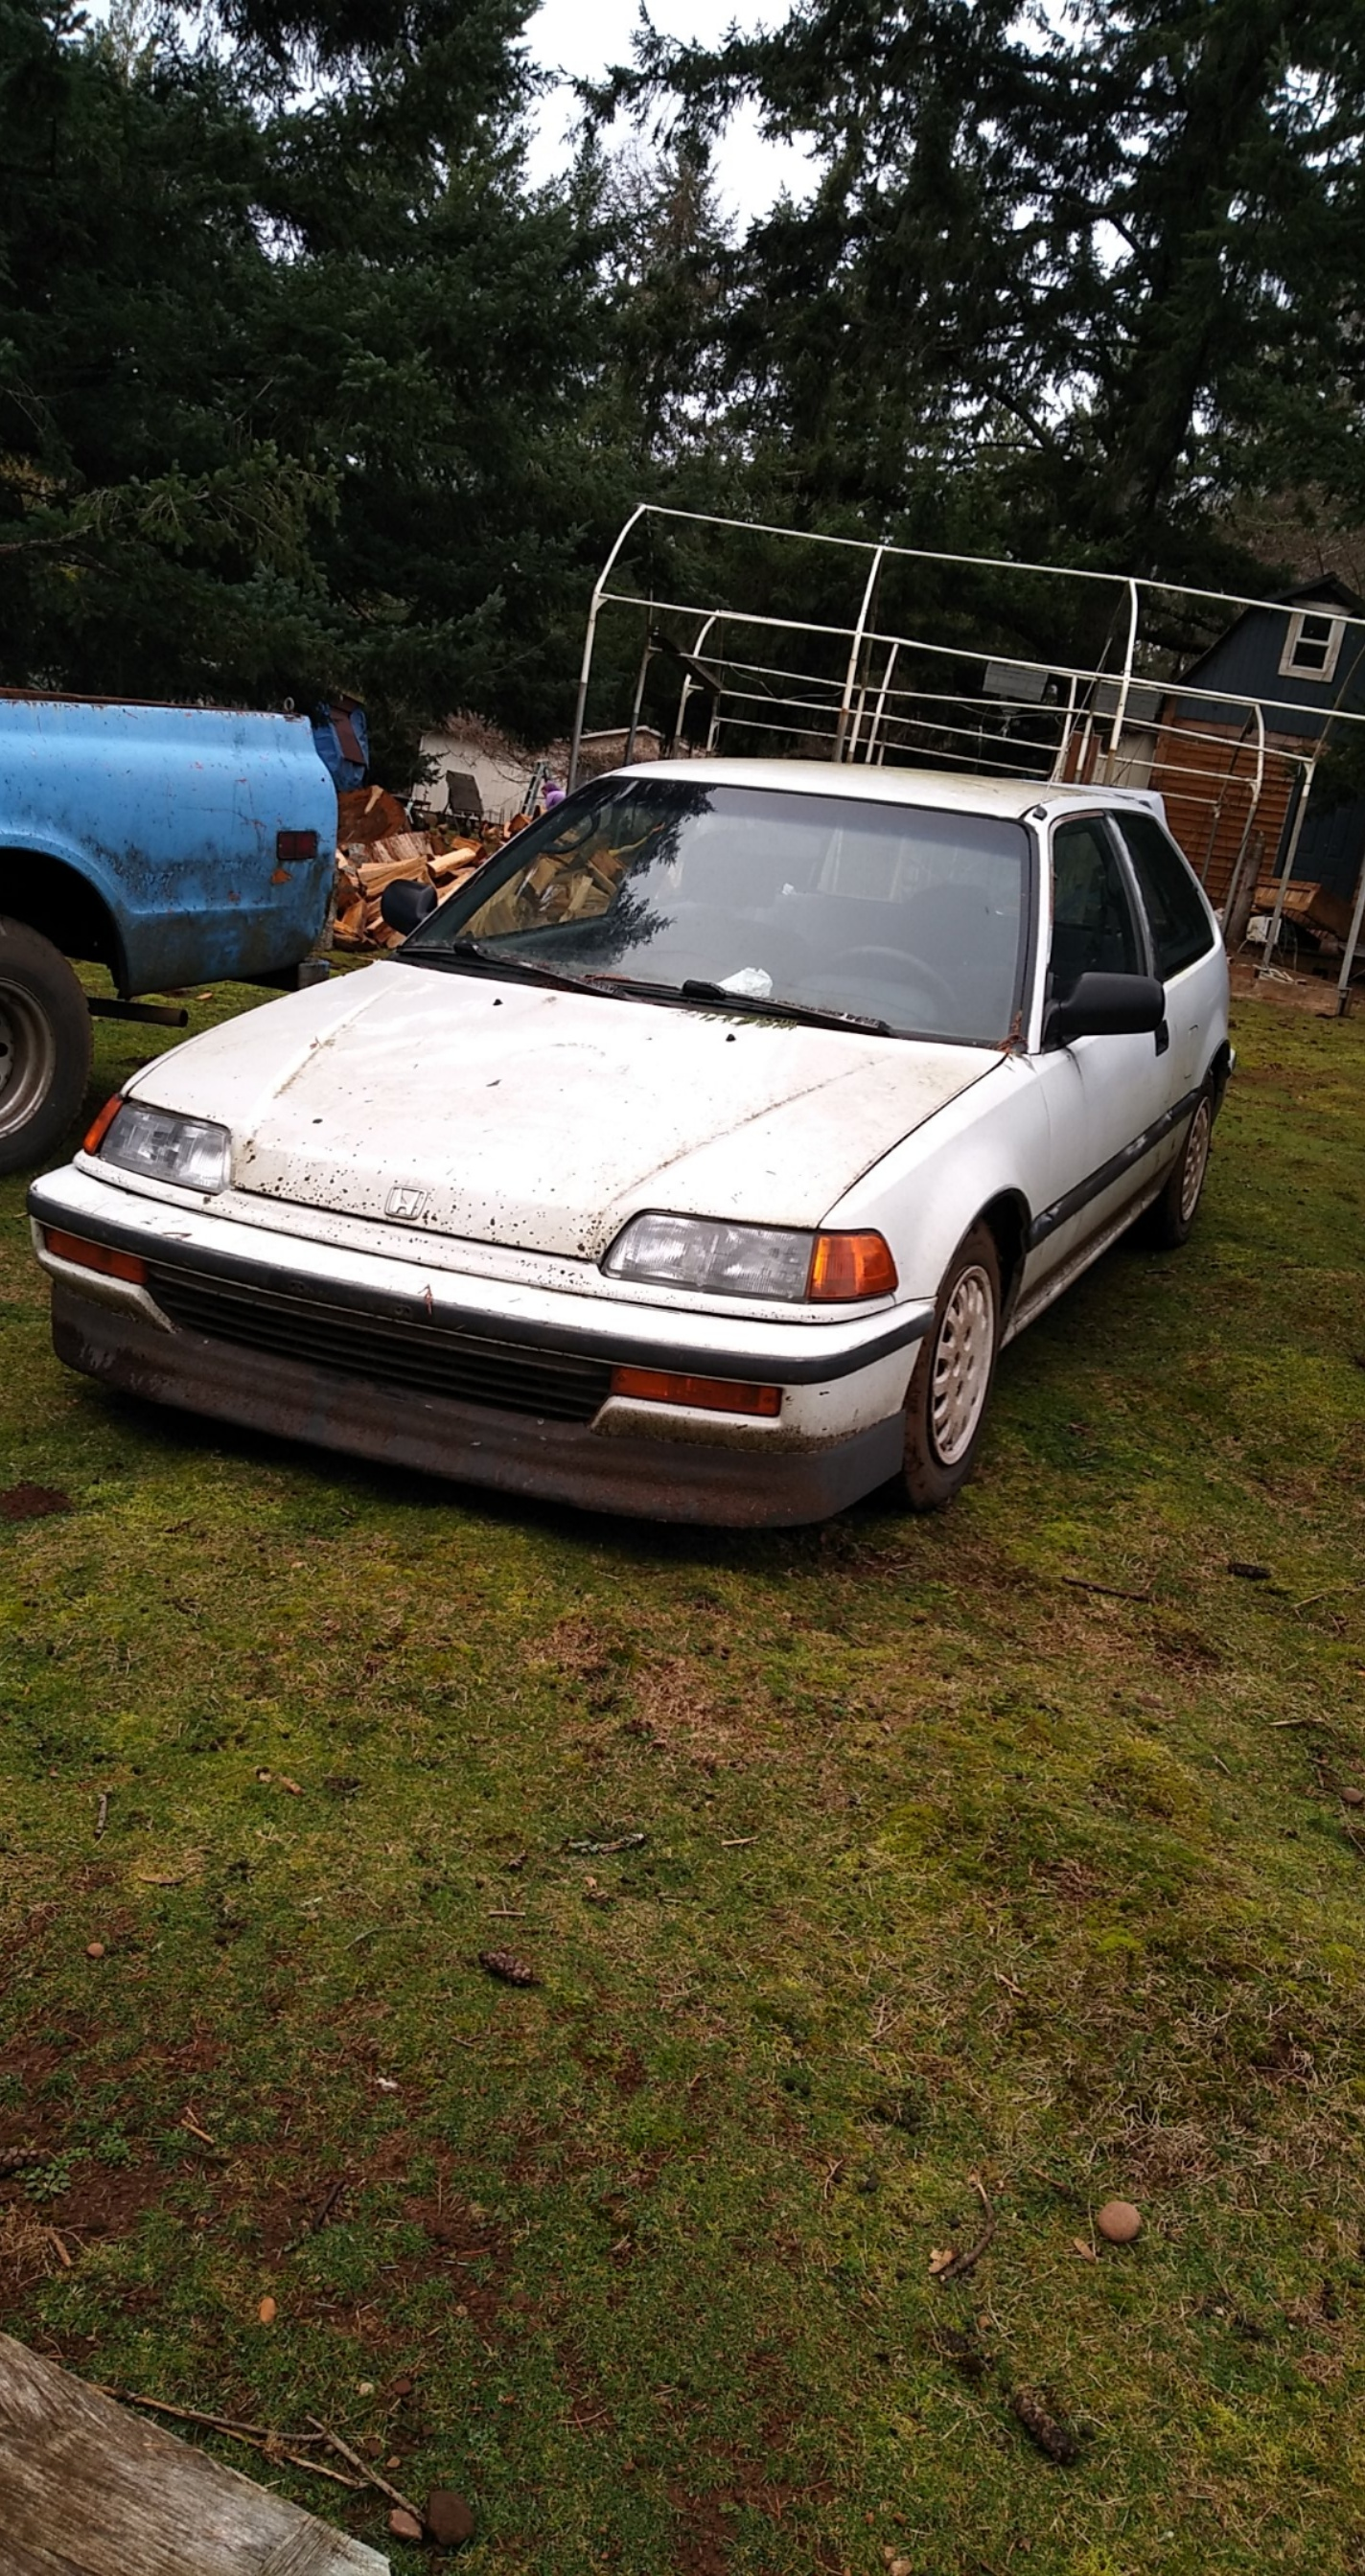 91 Honda Civic Dx : honda, civic, Honda, Civic, Miles,, Engine, Detail, Cleaning, Projectcar